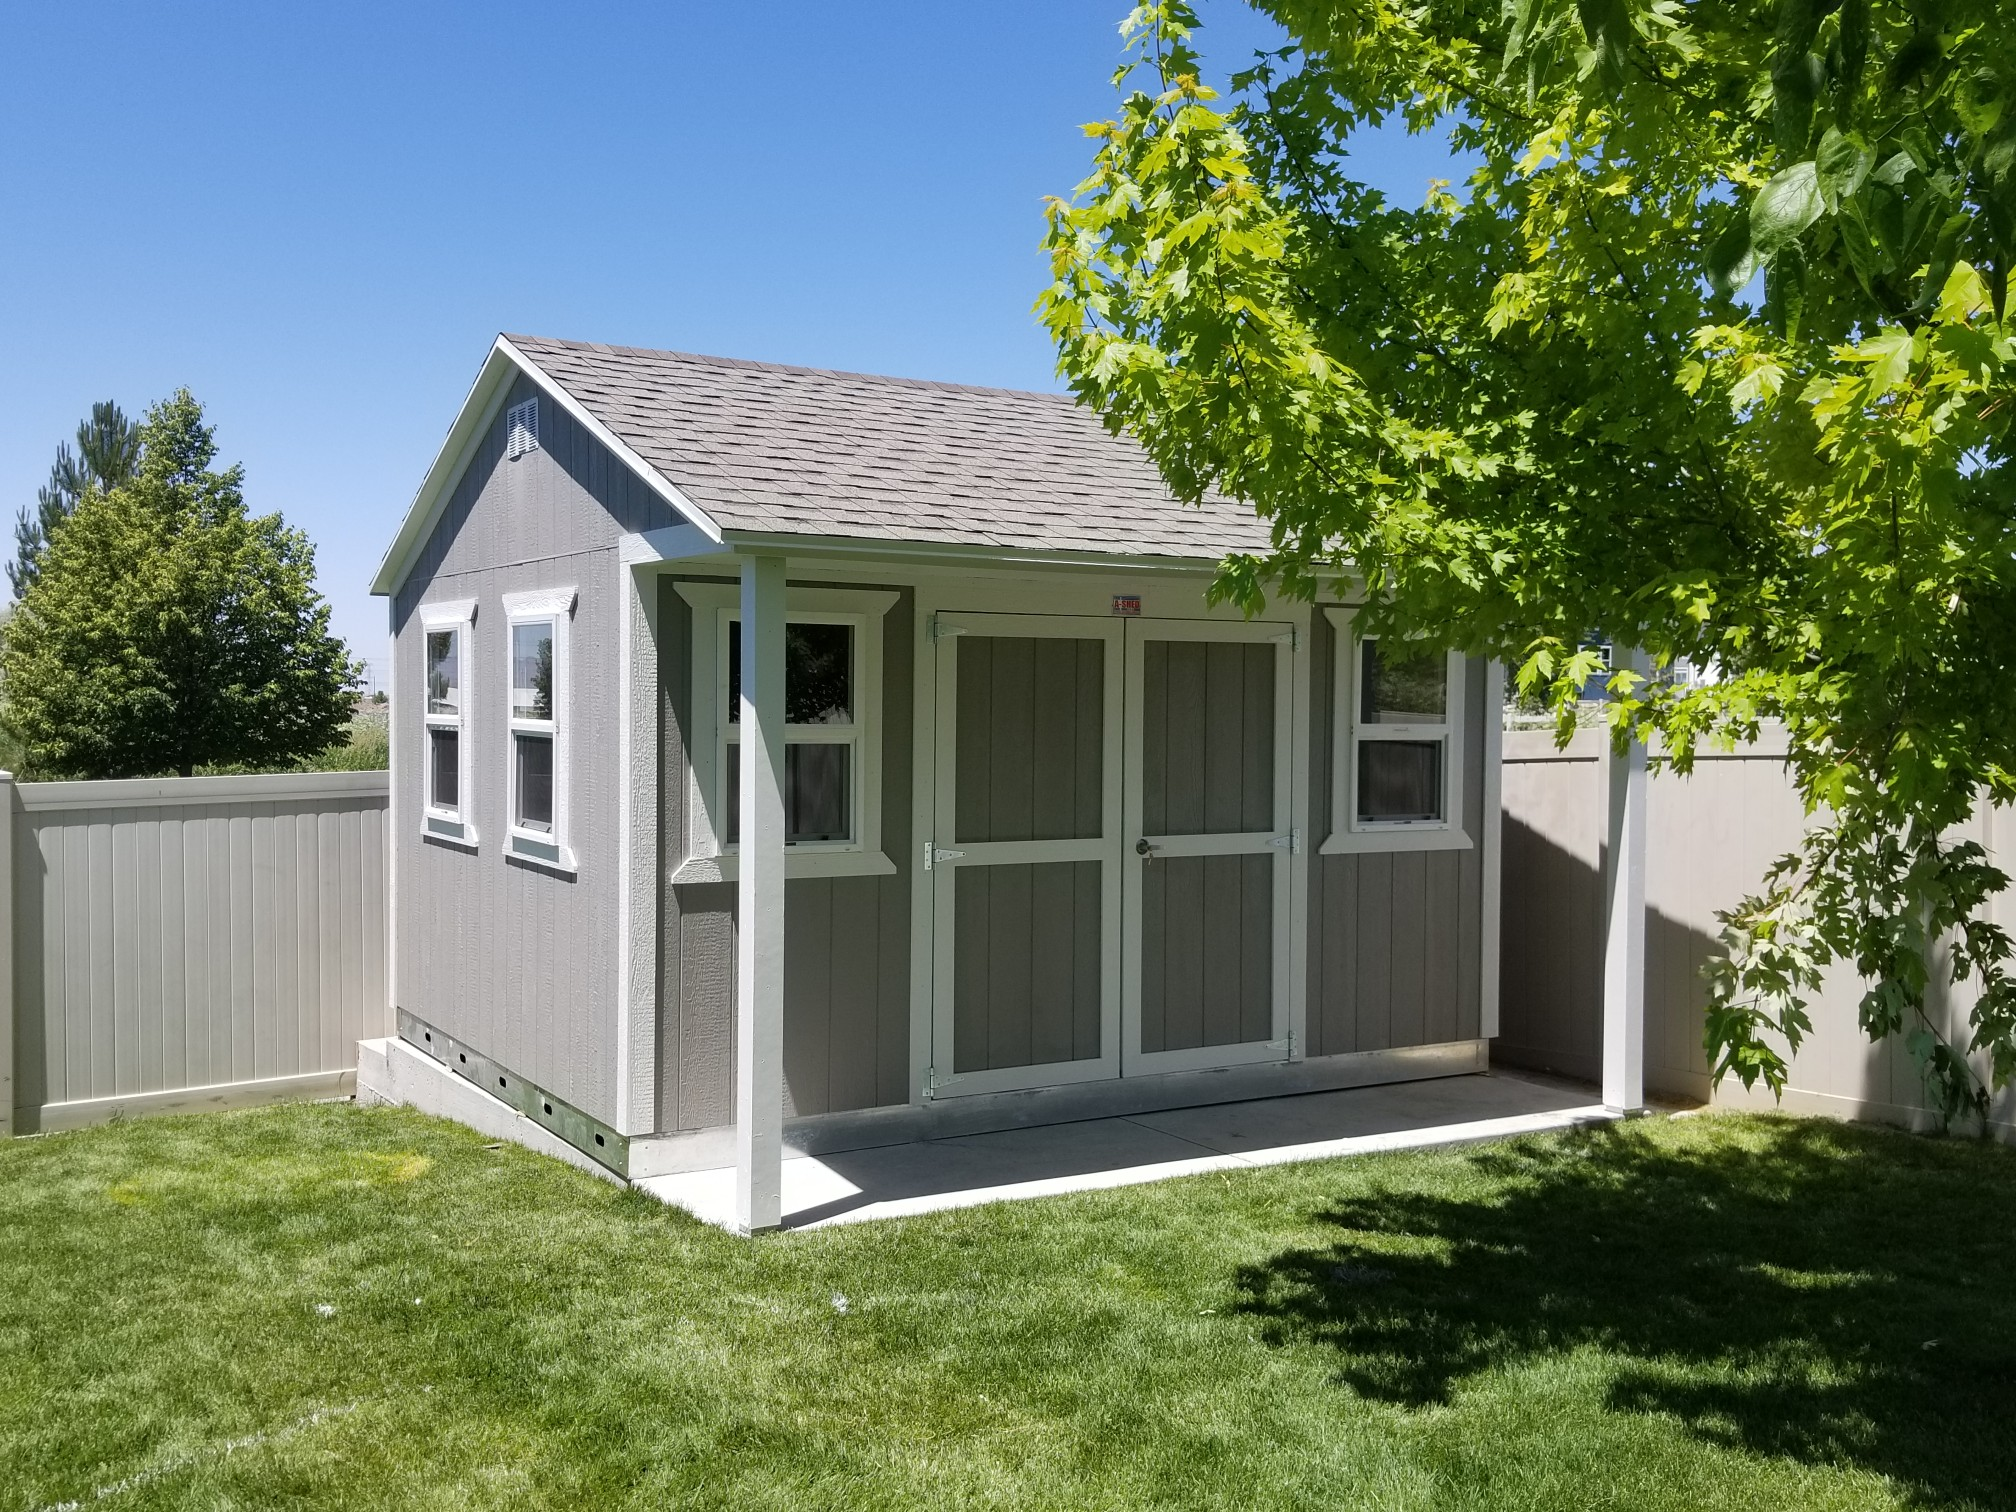 items avoid storing garden shed